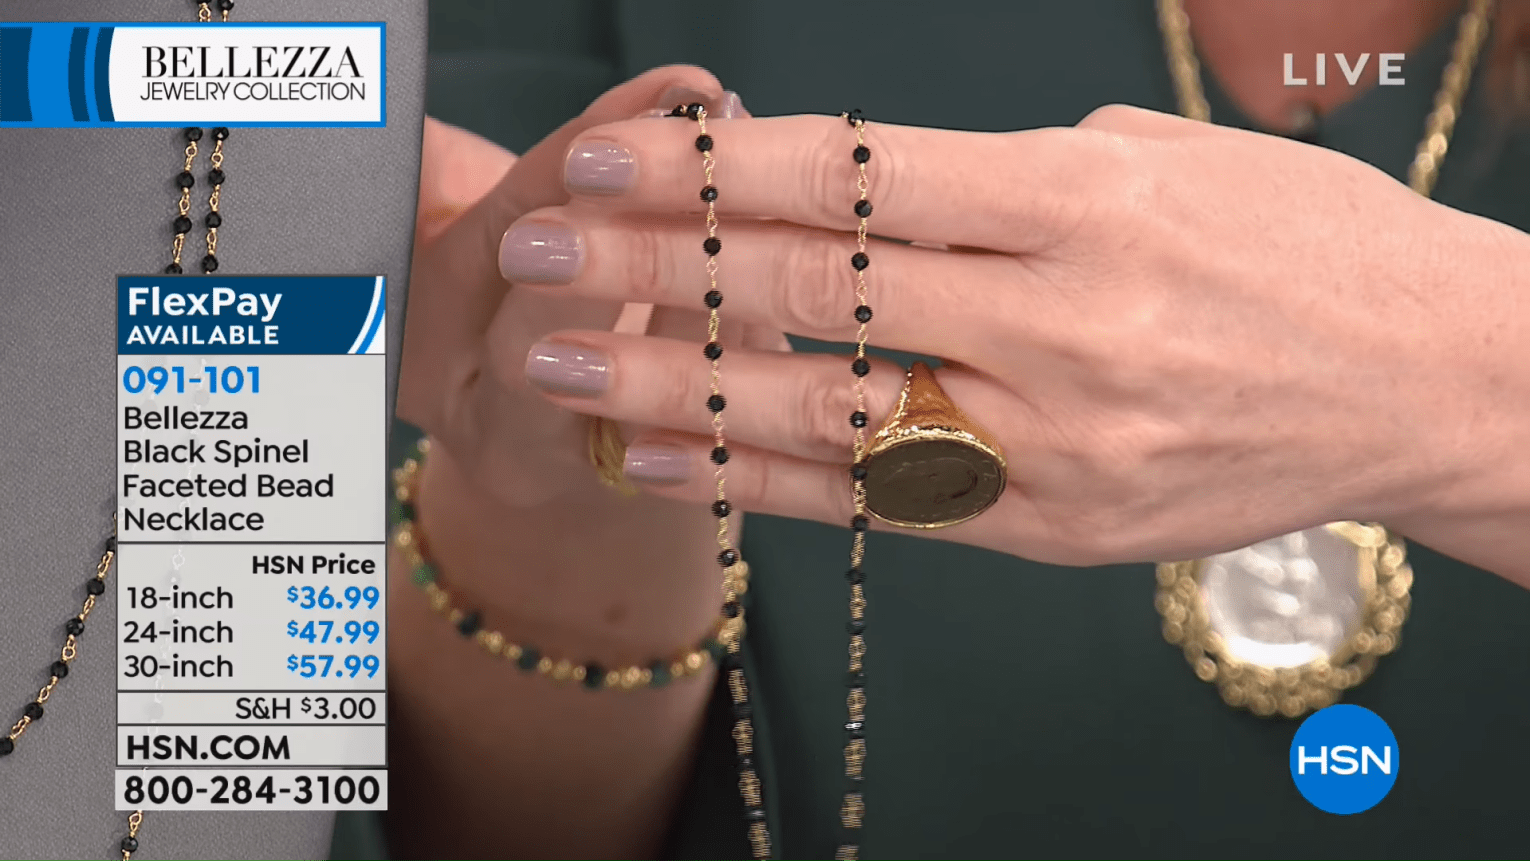 HSN _ Bellezza Jewelry Collection Gifts 10.18.2018 - 05 AM 40-19 screenshot